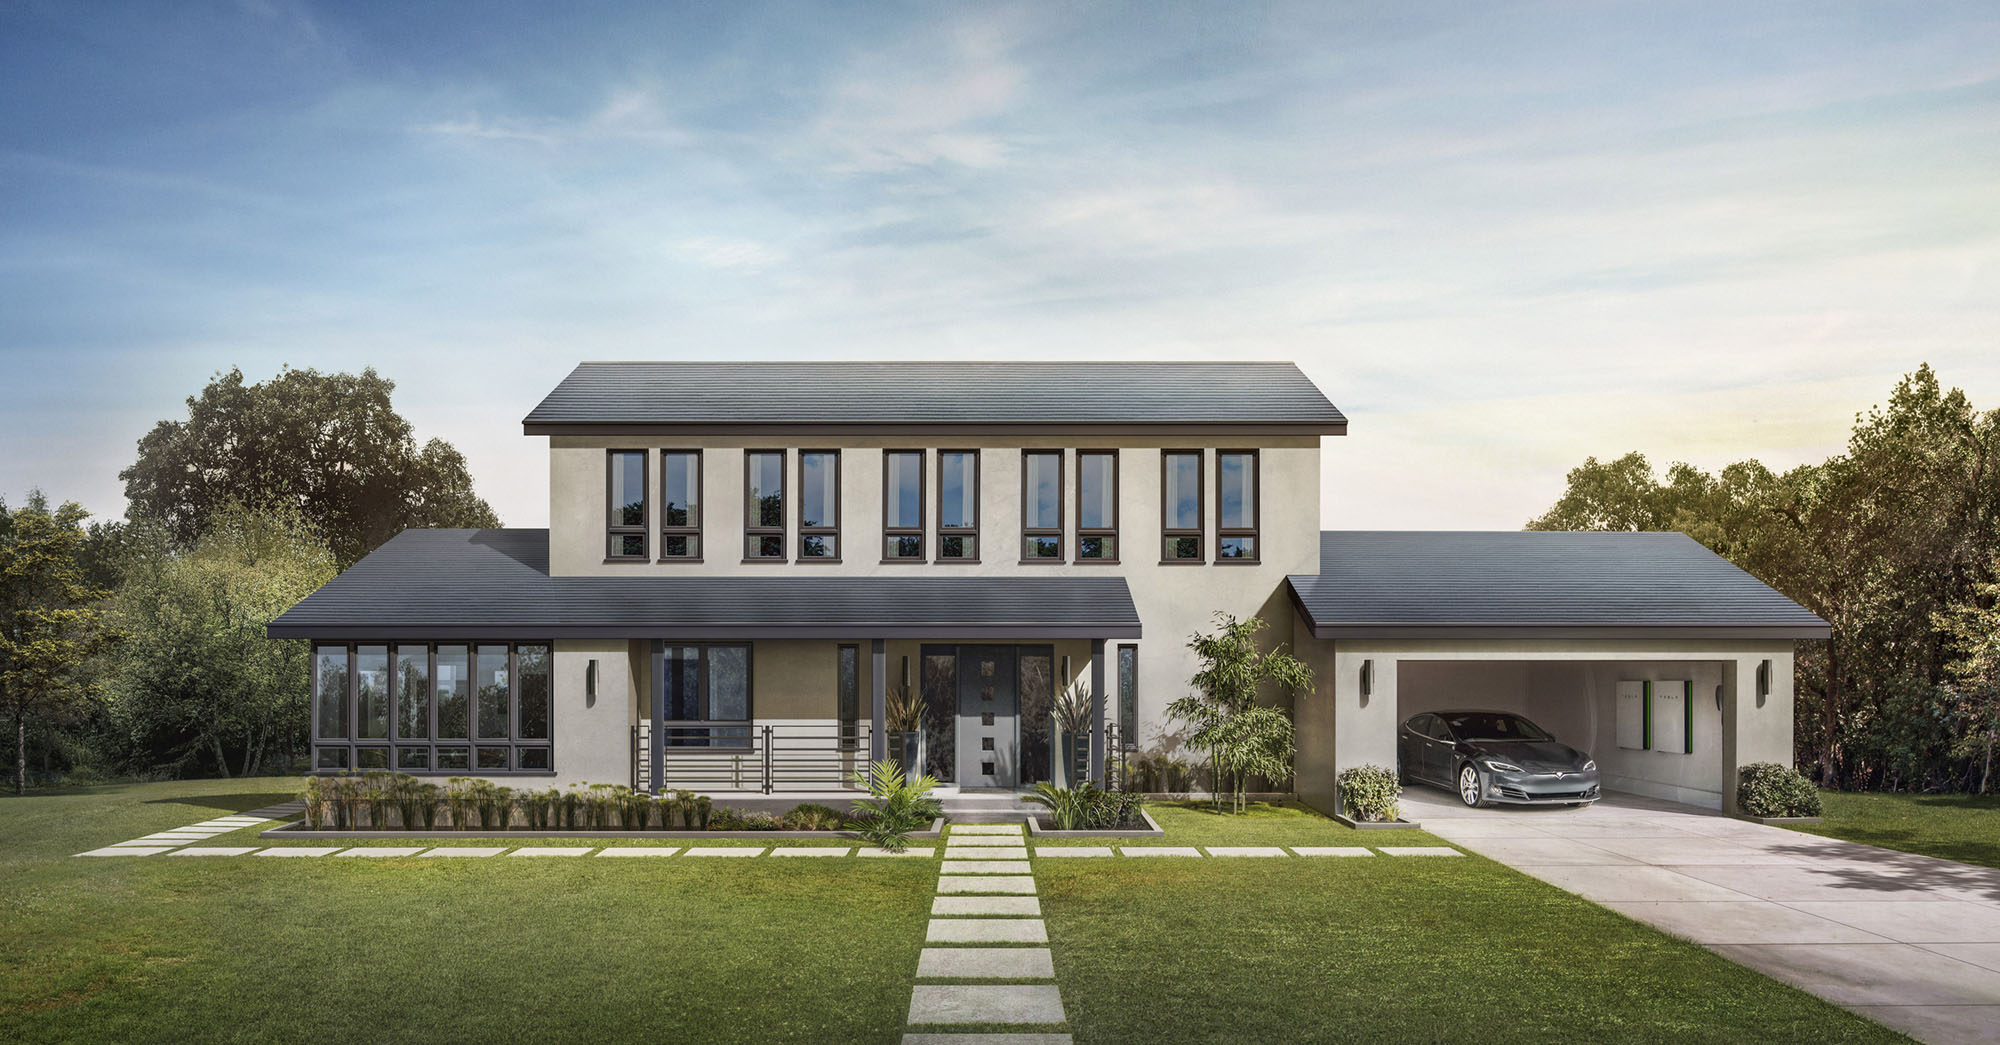 Tesla solardachziegel in deutschland anlegen in immobilien for In immobilien